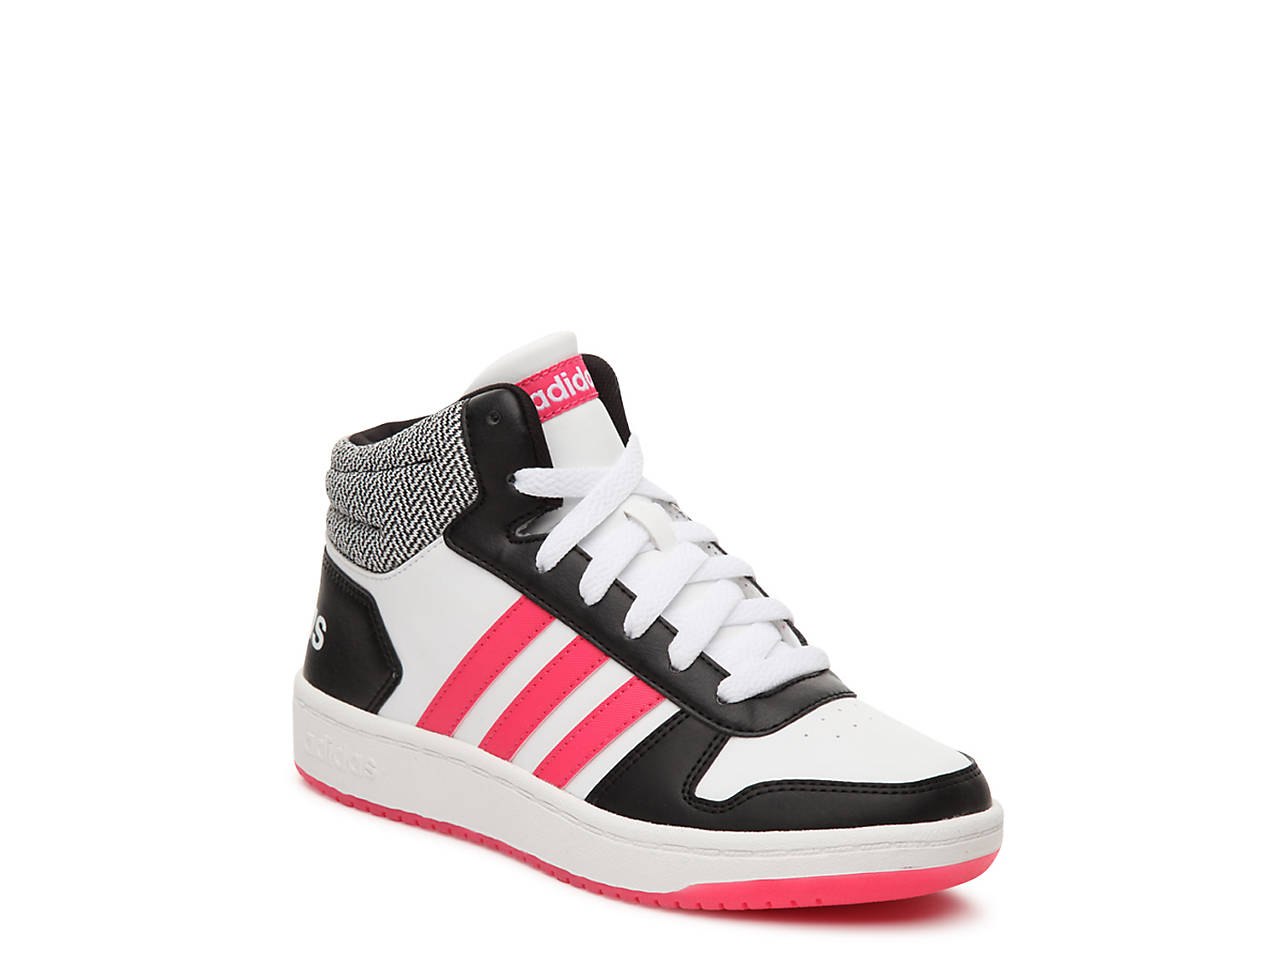 93dd0a071d0f adidas Hoops Mid 2 Toddler   Youth High-Top Sneaker Kids Shoes